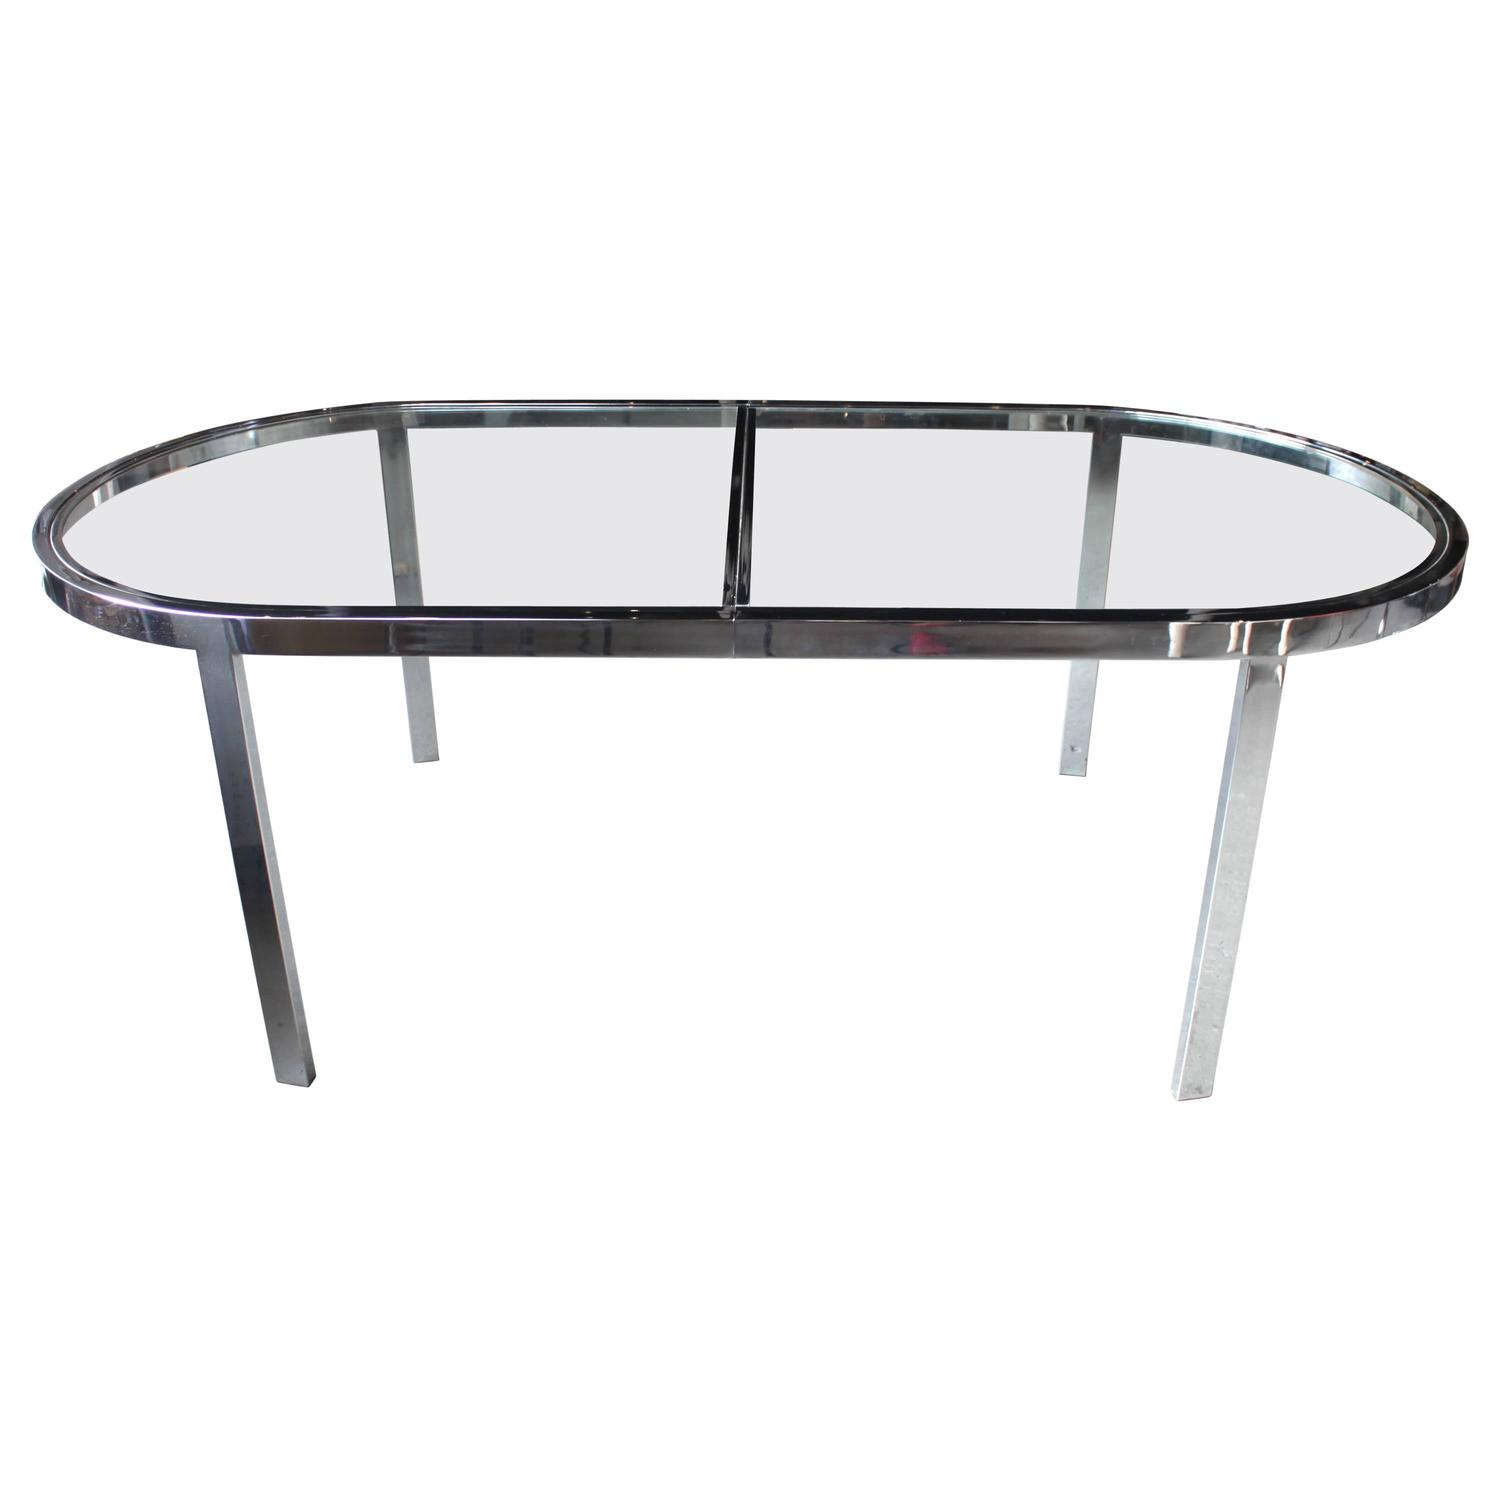 Milo Baughman Chrome And Glass Dining Table With Two Leaves At 1stdibs